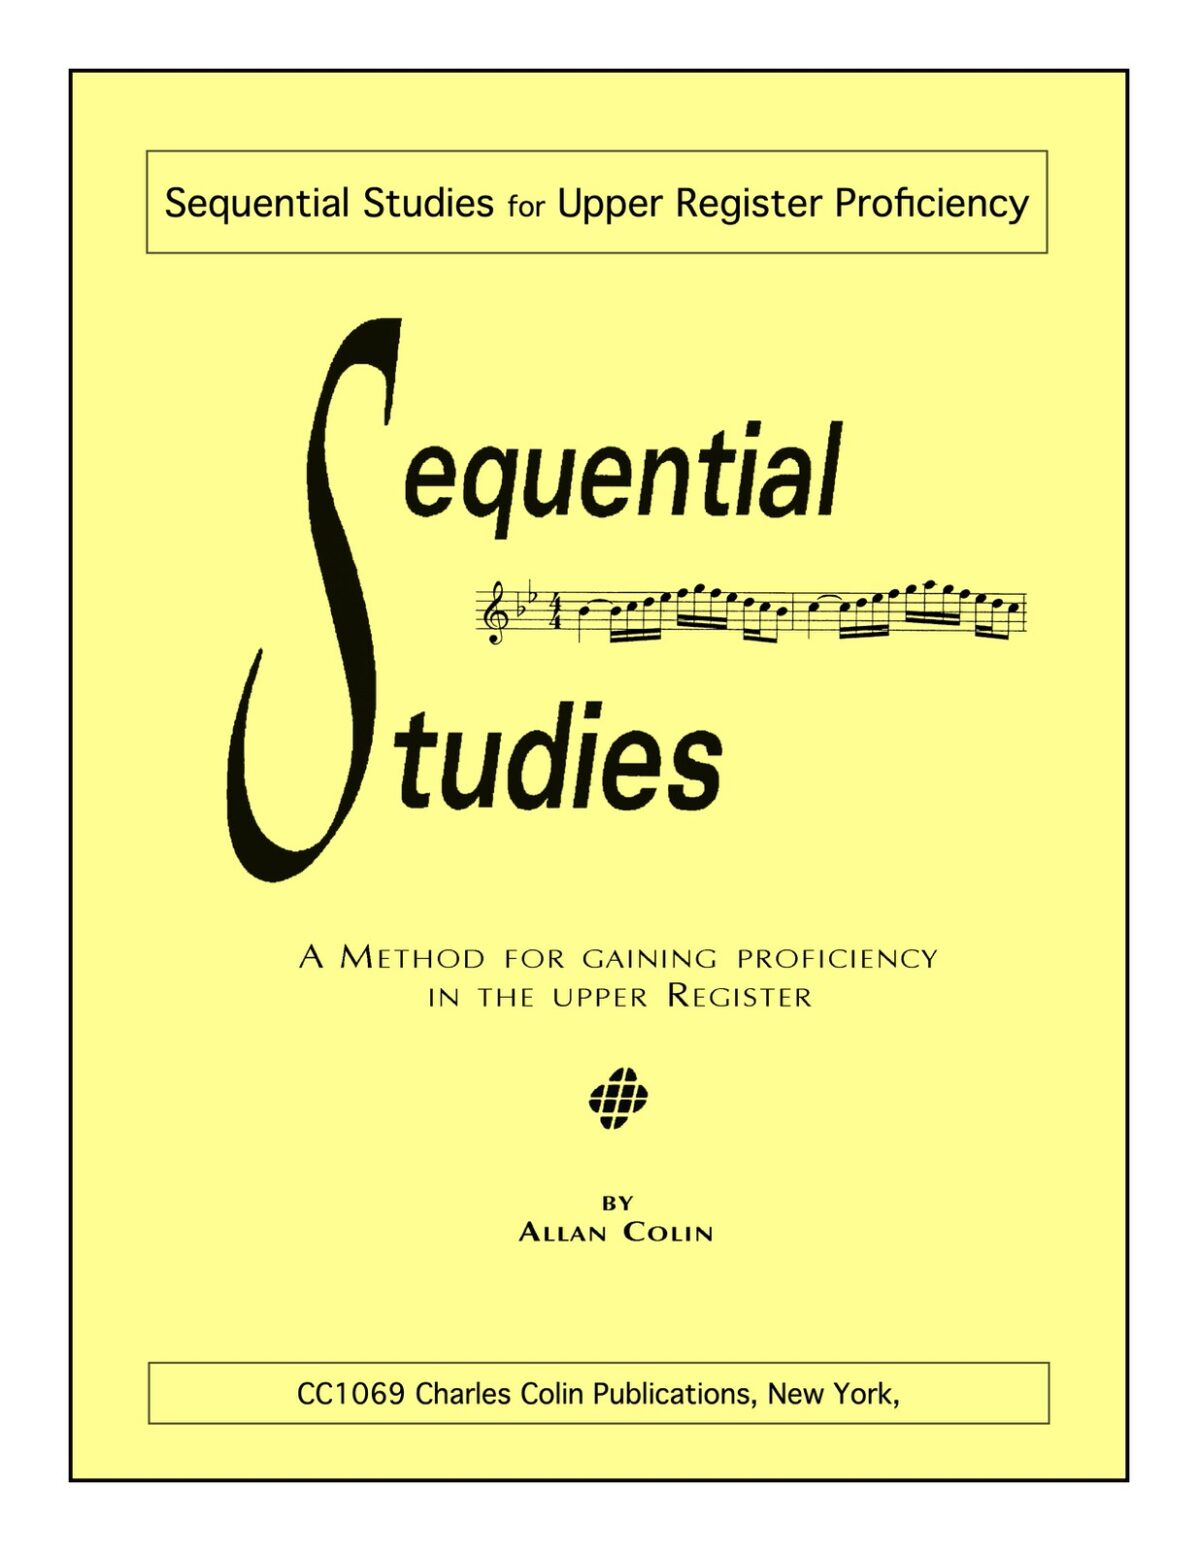 Colin, Sequential Studies for Upper Register-p01